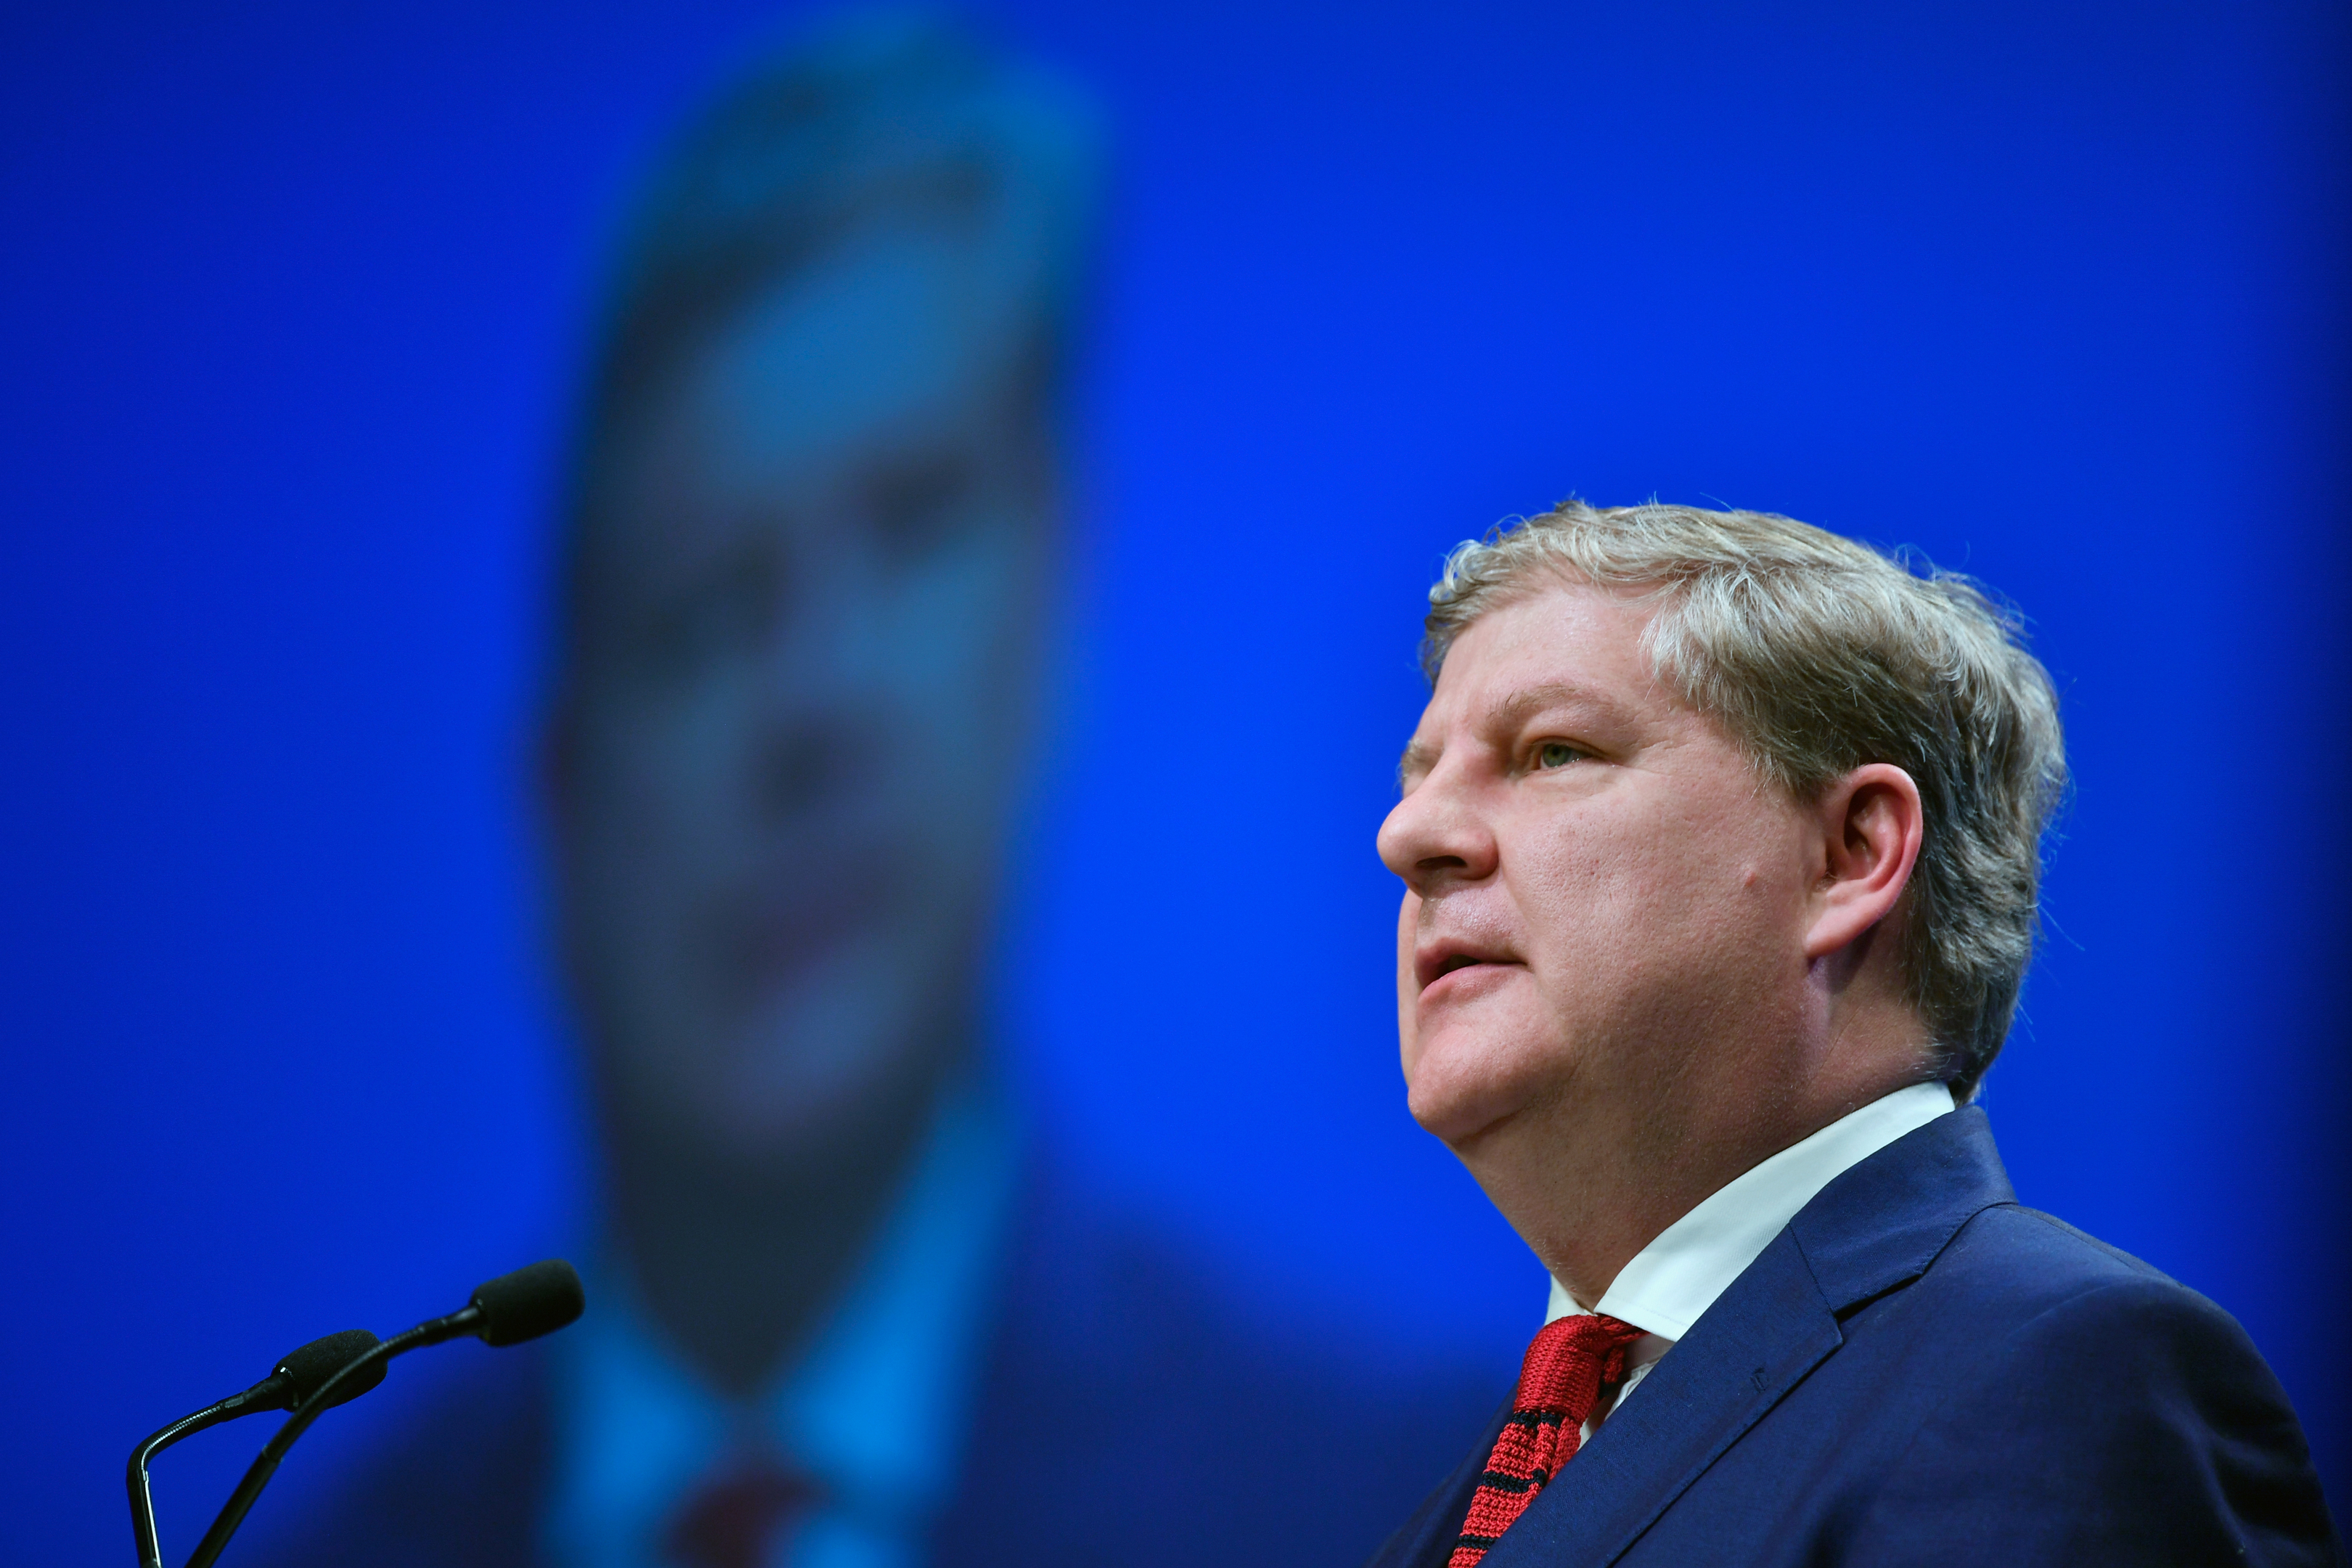 Angus Robertson, deputy SNP leader, addresses delegates at the spring SNP conference (Jeff J Mitchell/Getty Images)